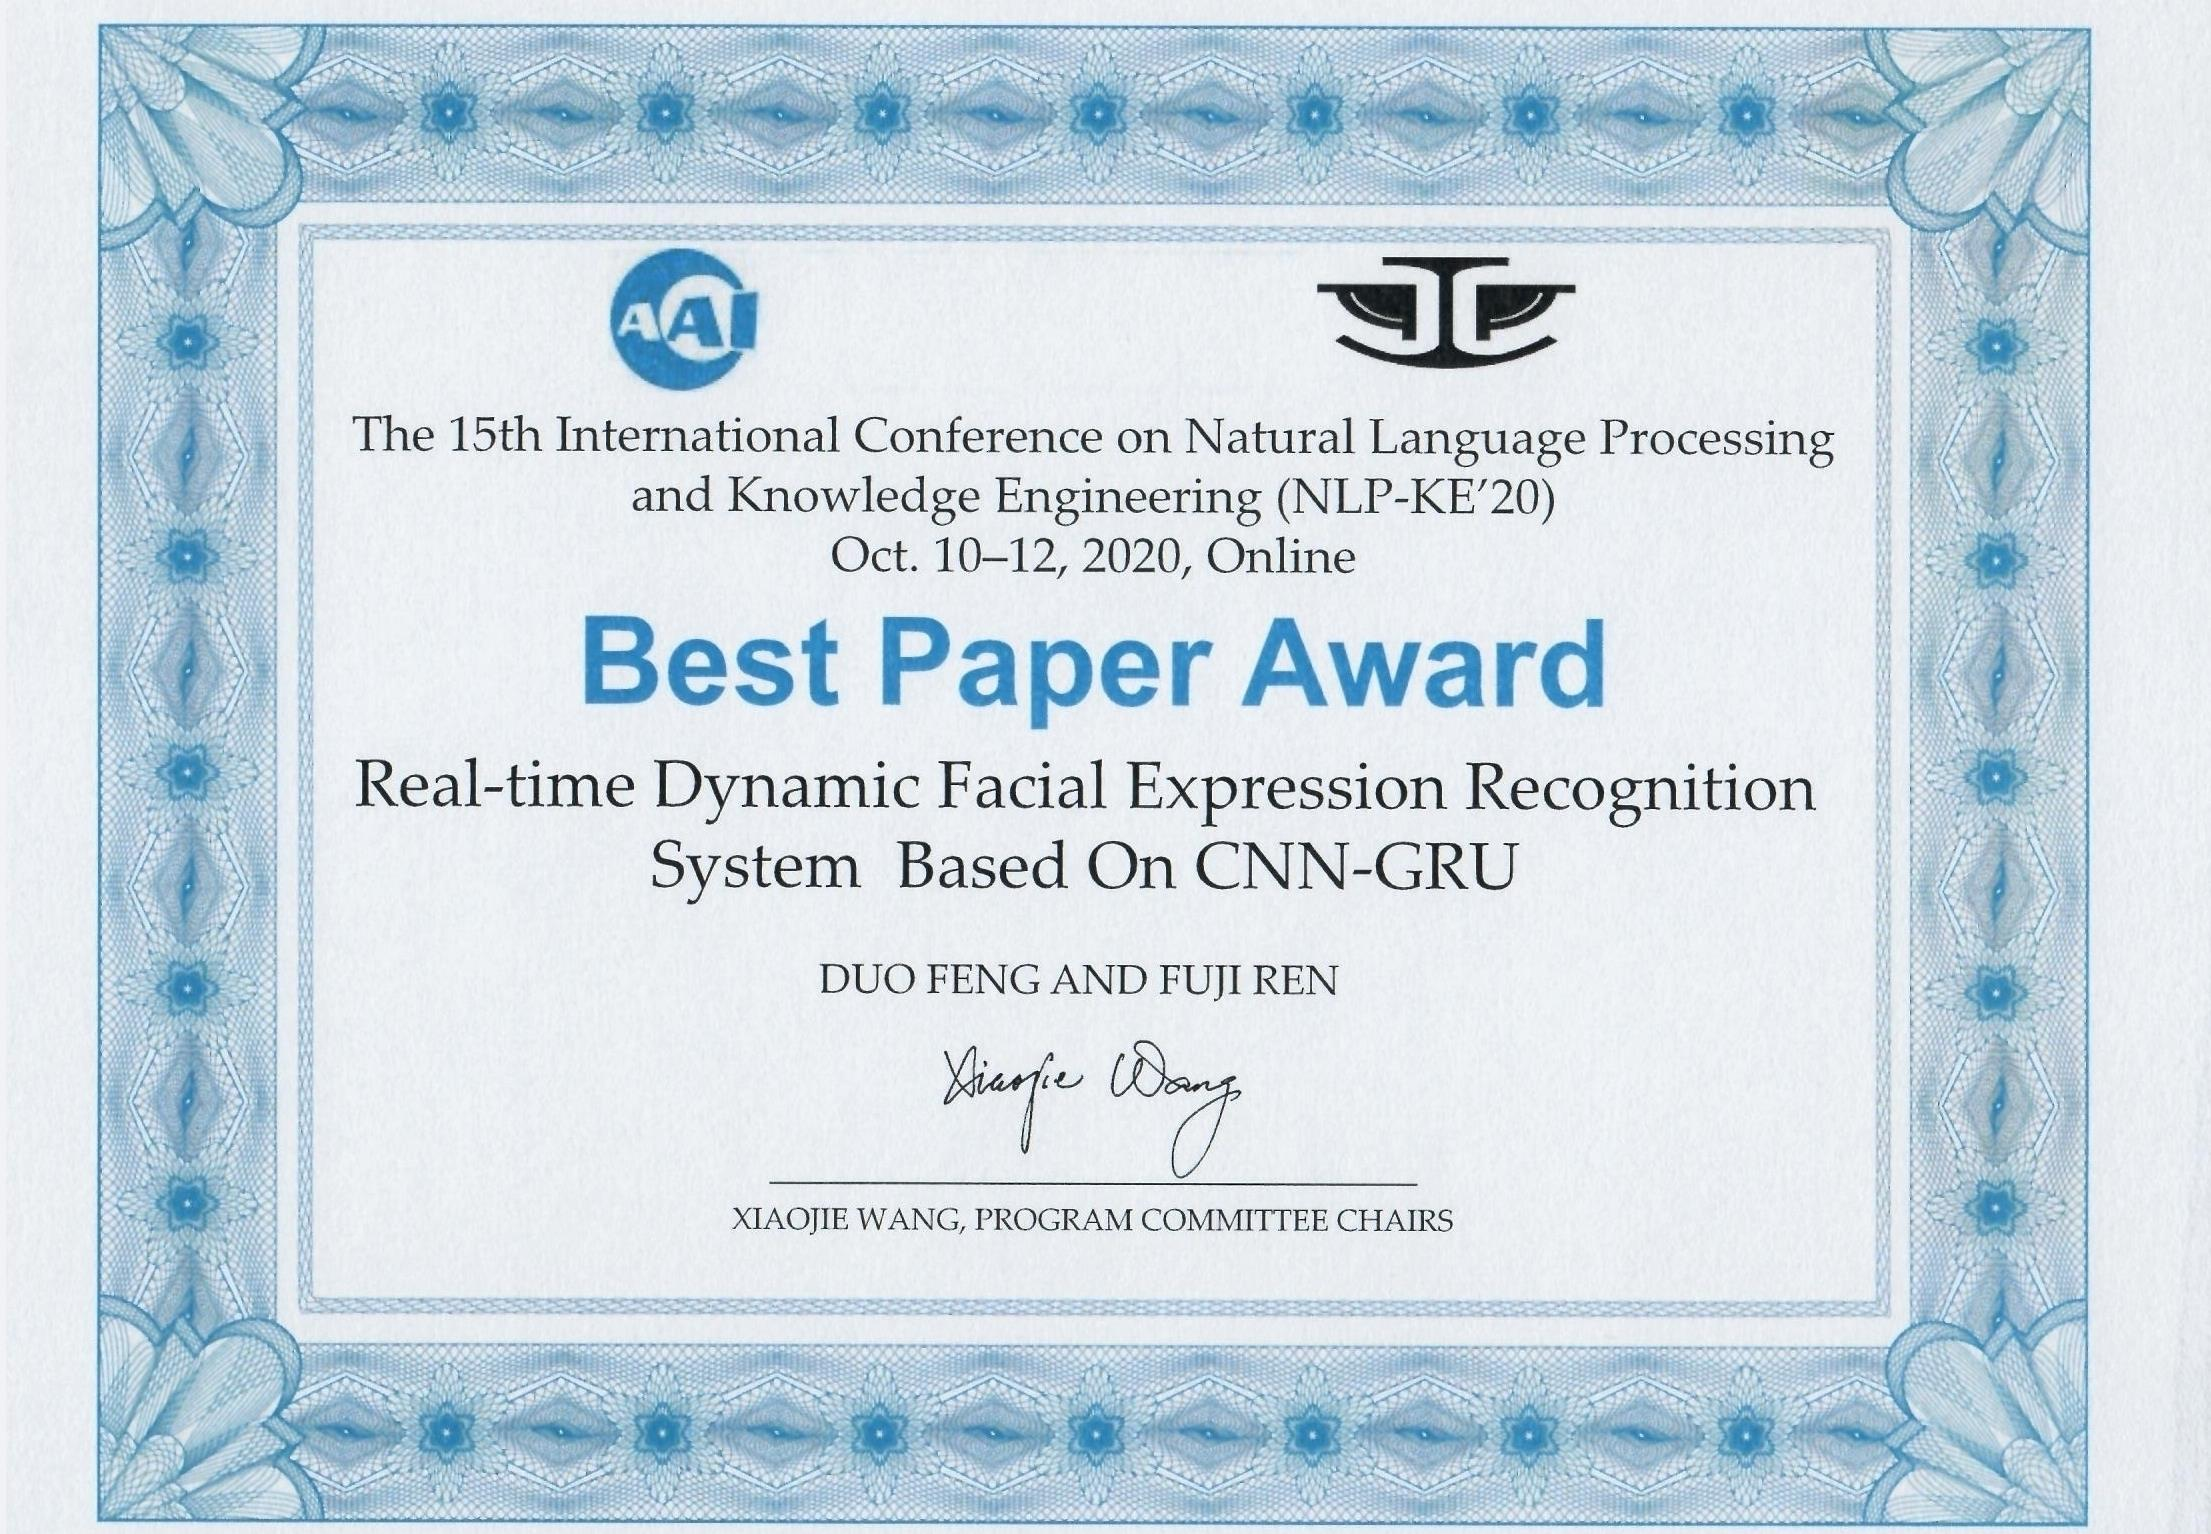 Duo Feng and Fuji Ren_Best Paper Award.jpg